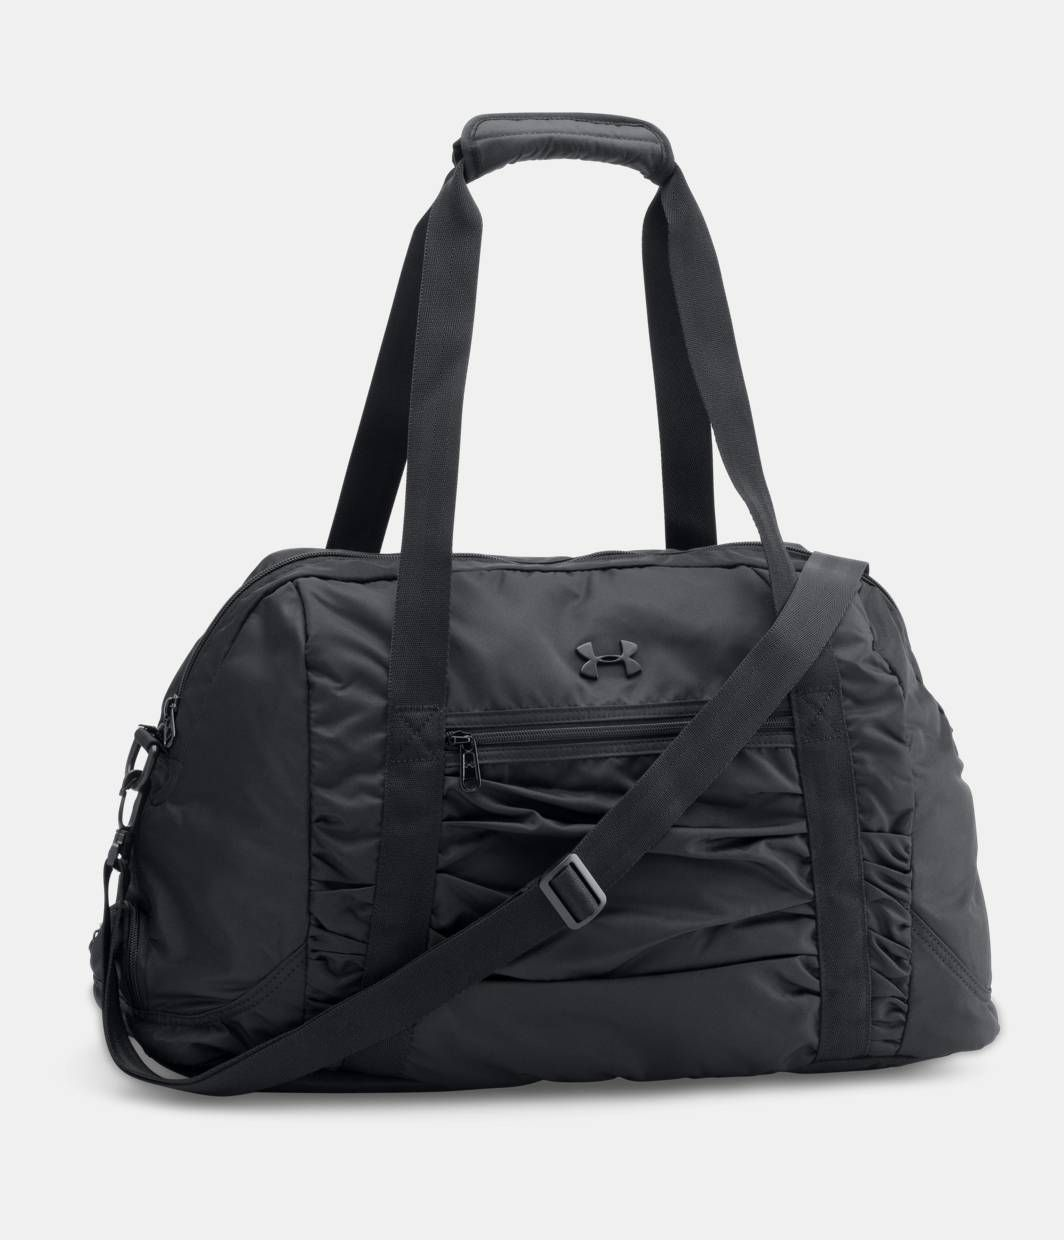 faaba10ace92ef Loving this Black Perfect Duffel Bag on #zulily! #zulilyfinds | Wear it to  Work Out | Bags, Gym Bag, Duffel bag